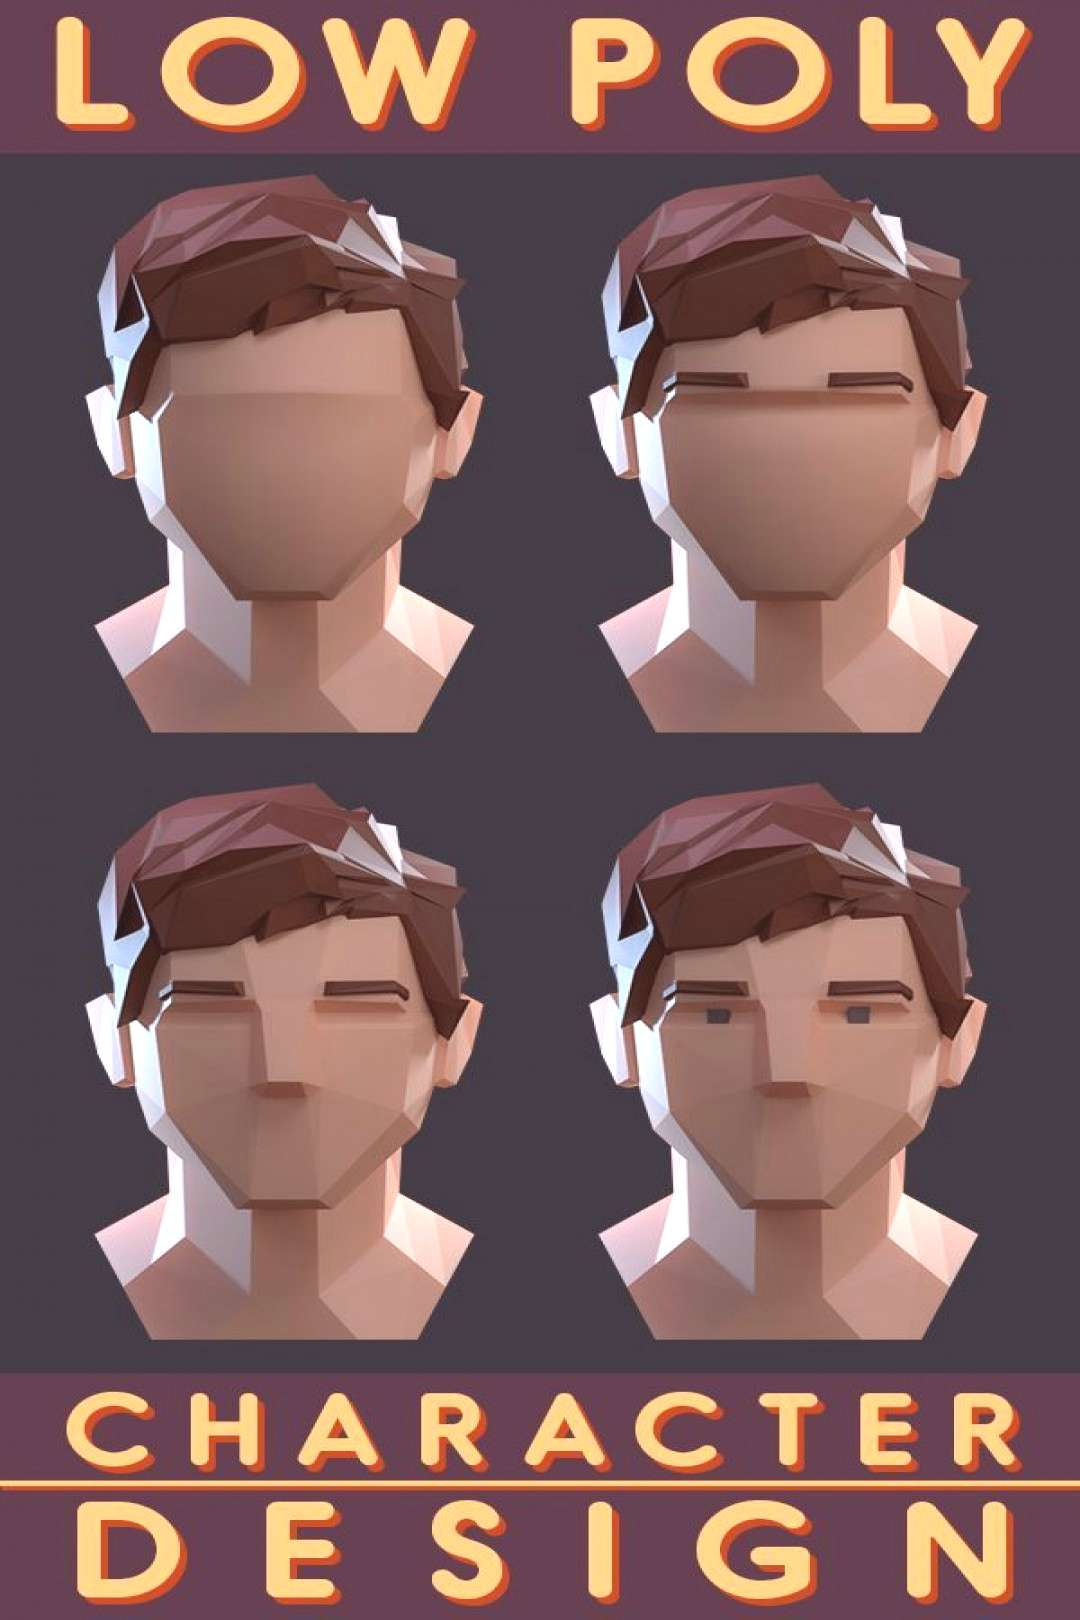 Learn how to create beautiful Low Poly characters with our extensive guide. Come along as we explor